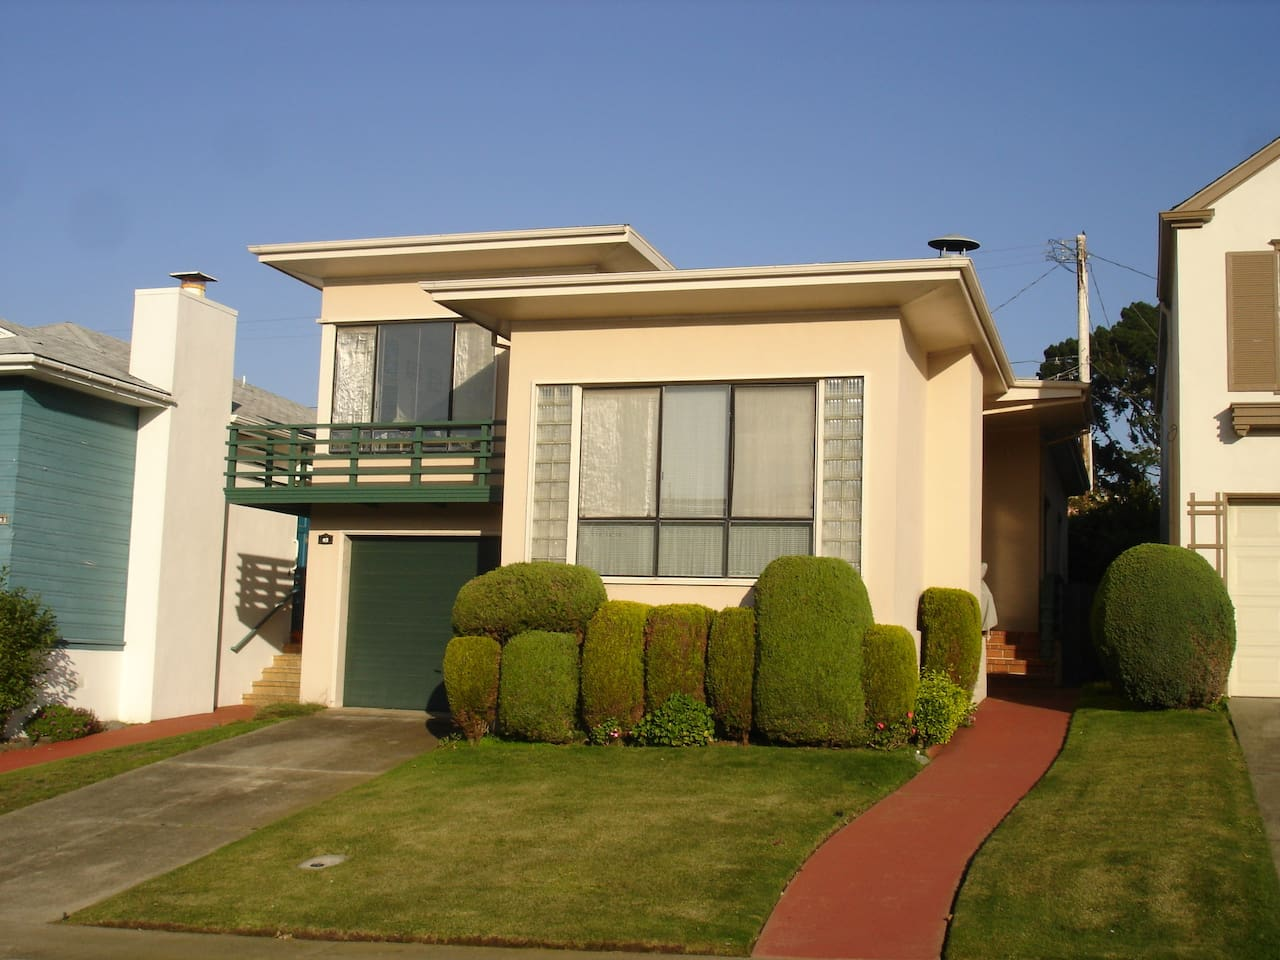 Fully furnished home, 2 bedrooms, 1 full bath in Westlake Daly City (slightly south of San Francisco). Full kitchen, living rm & Dining room too!